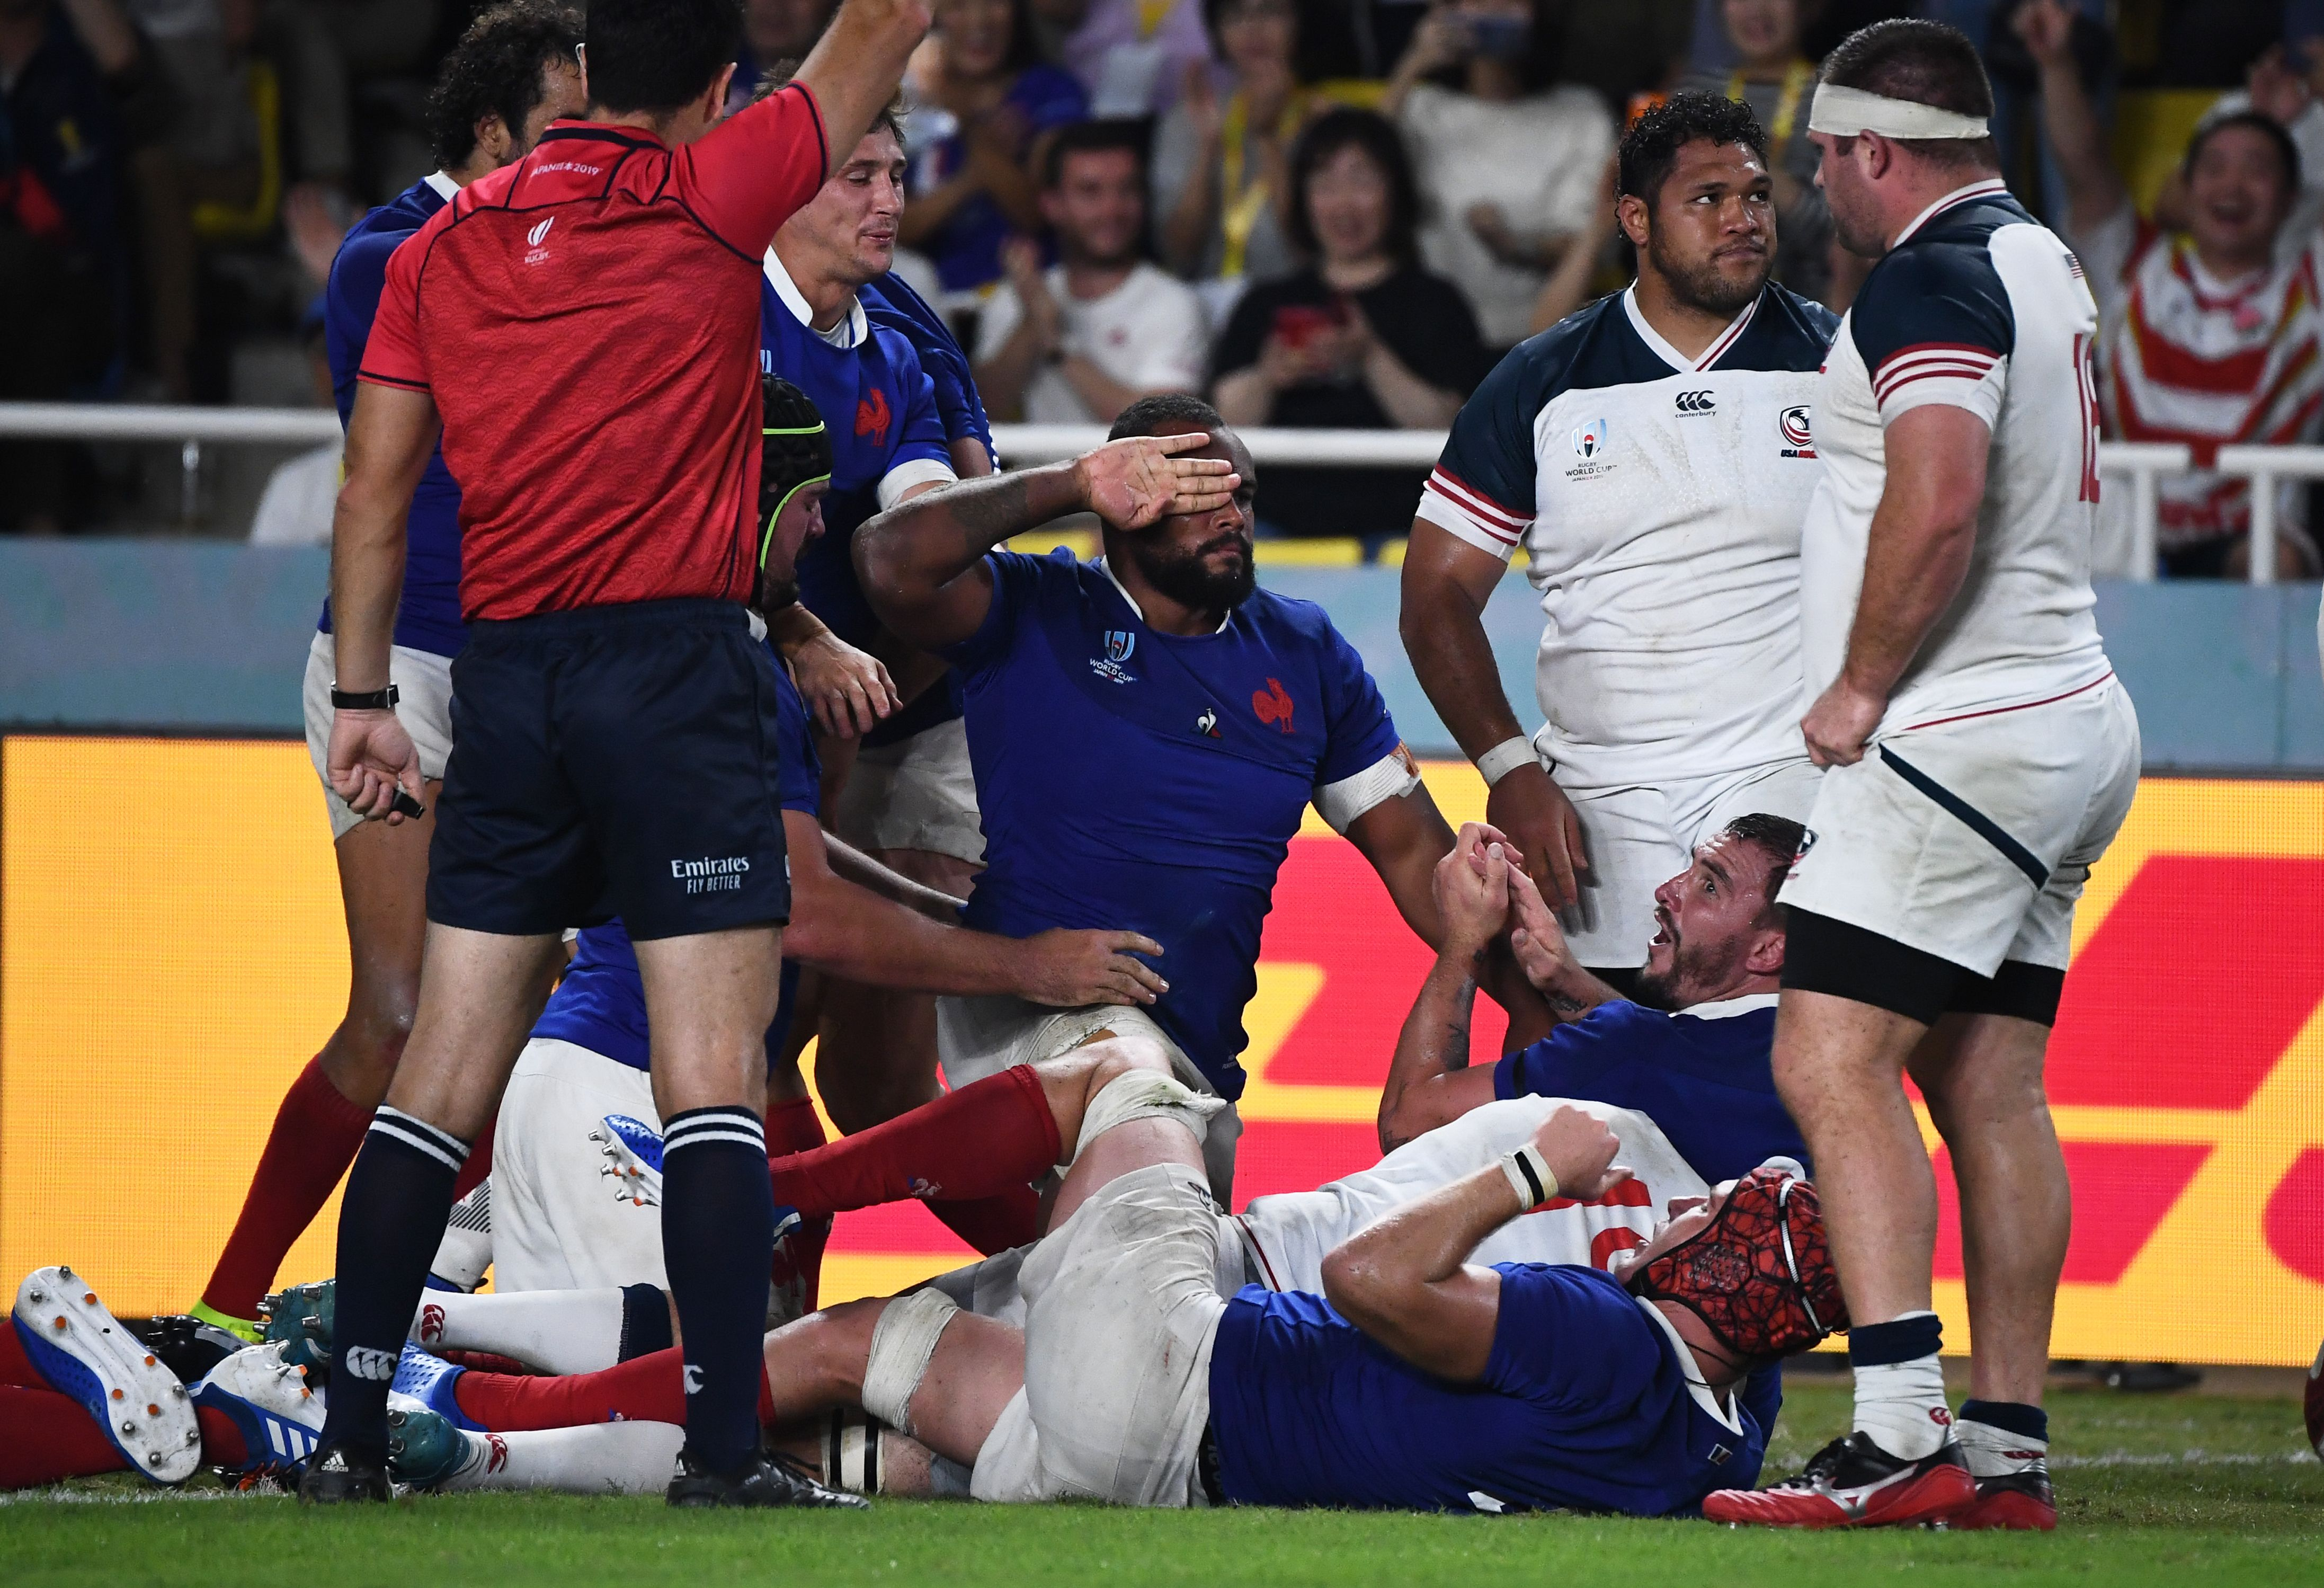 Celebration At Rugby World Cup